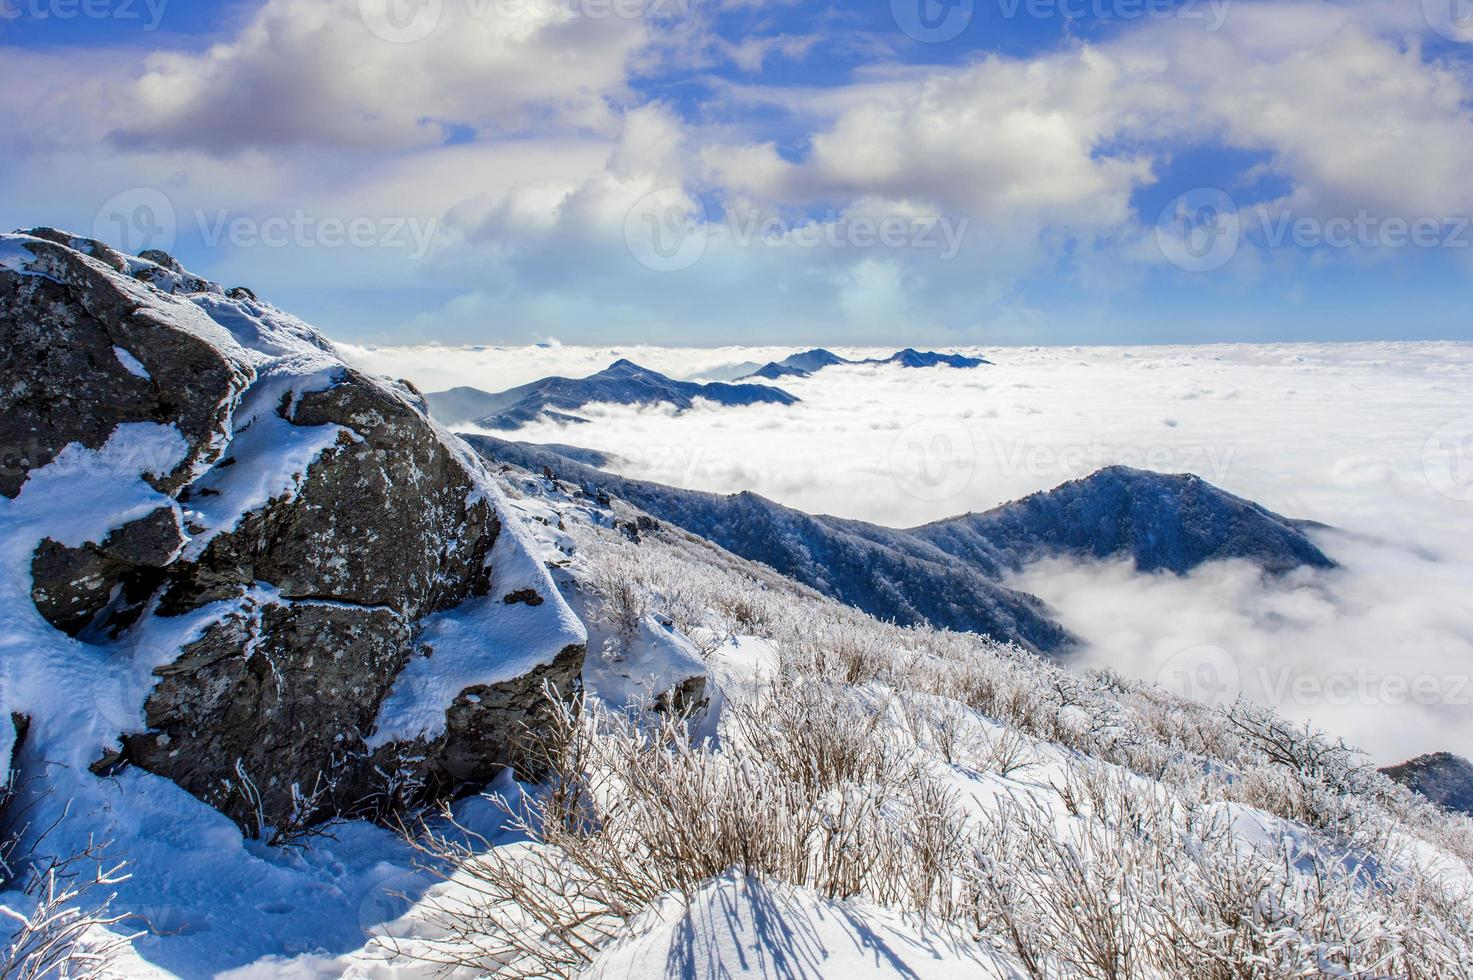 Seoraksan mountains is covered by morning fog in winter, Korea. photo